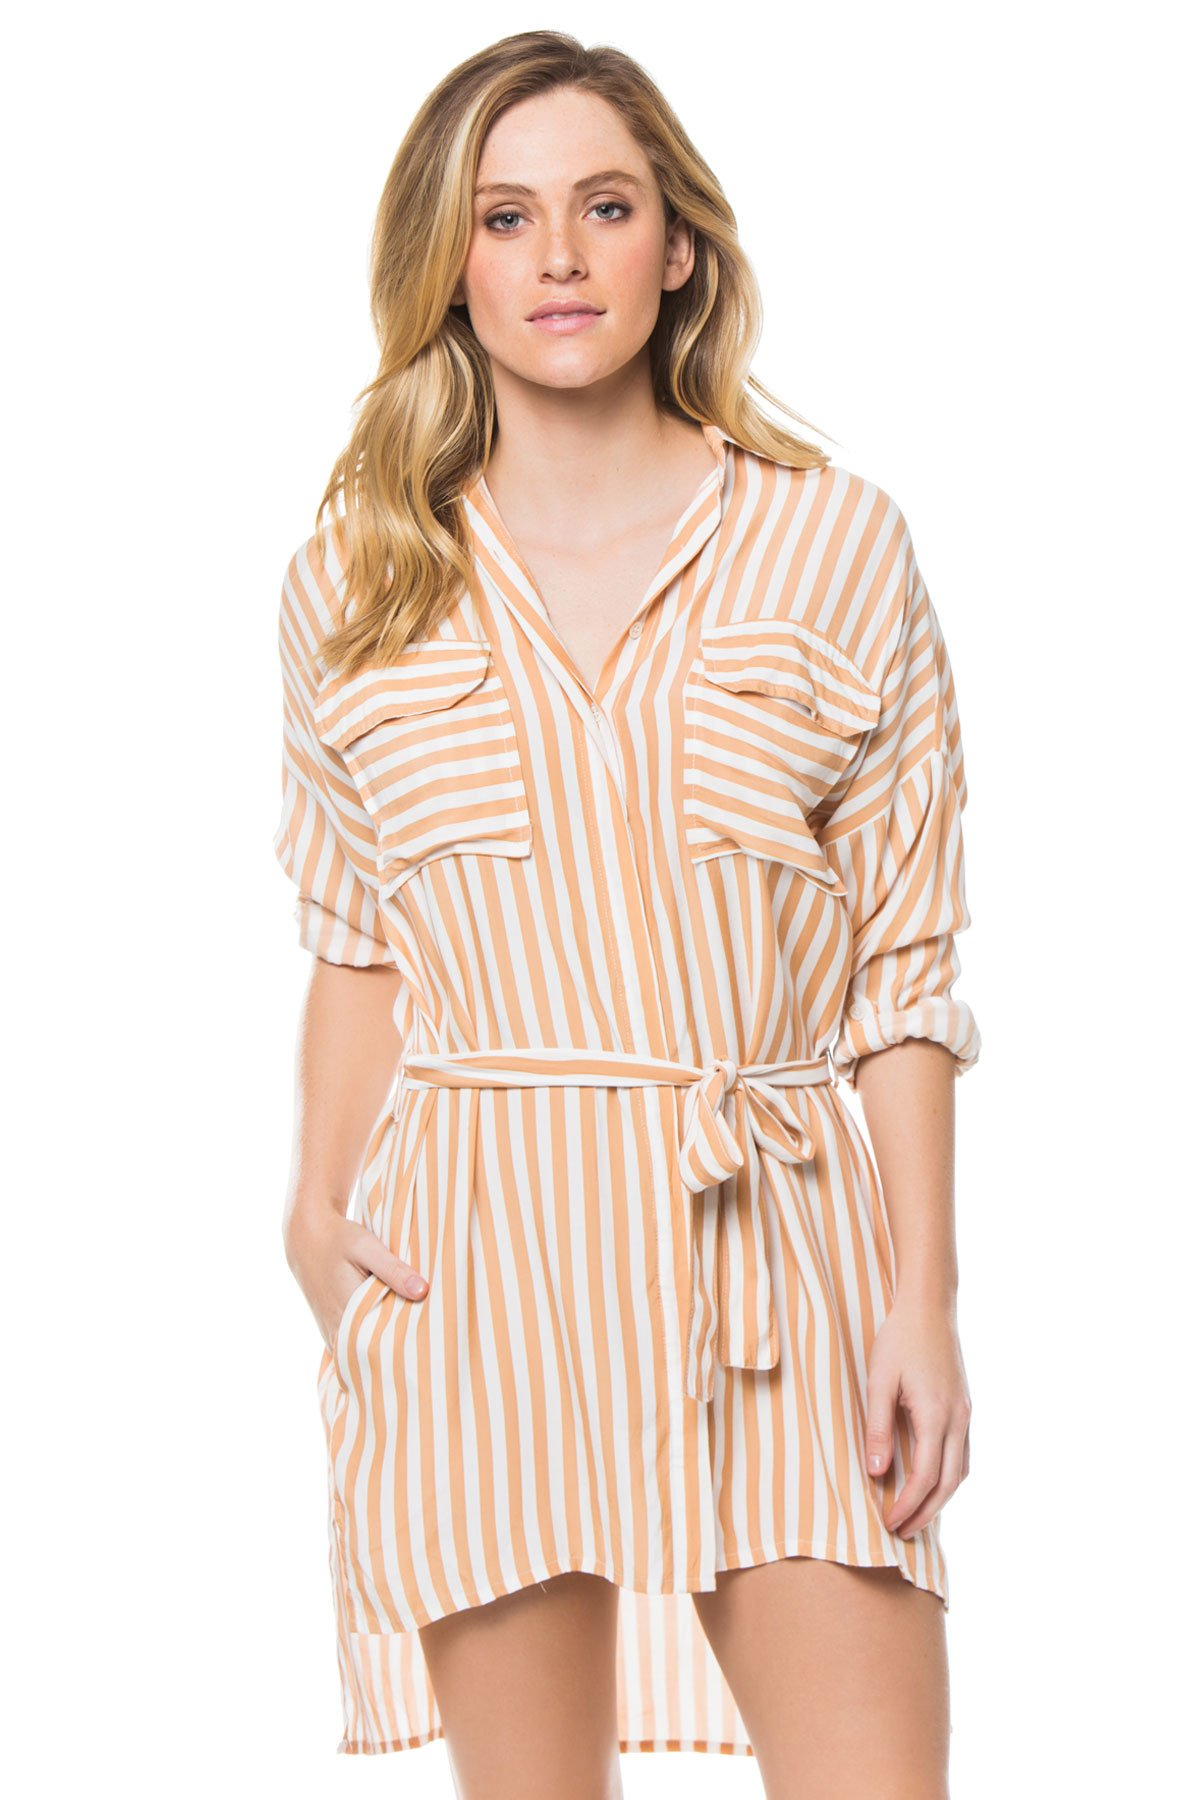 Faithfull The Brand Women's Shirt Dress Swim Cover Up Zeus Stripe Print - Vintage Pink 2